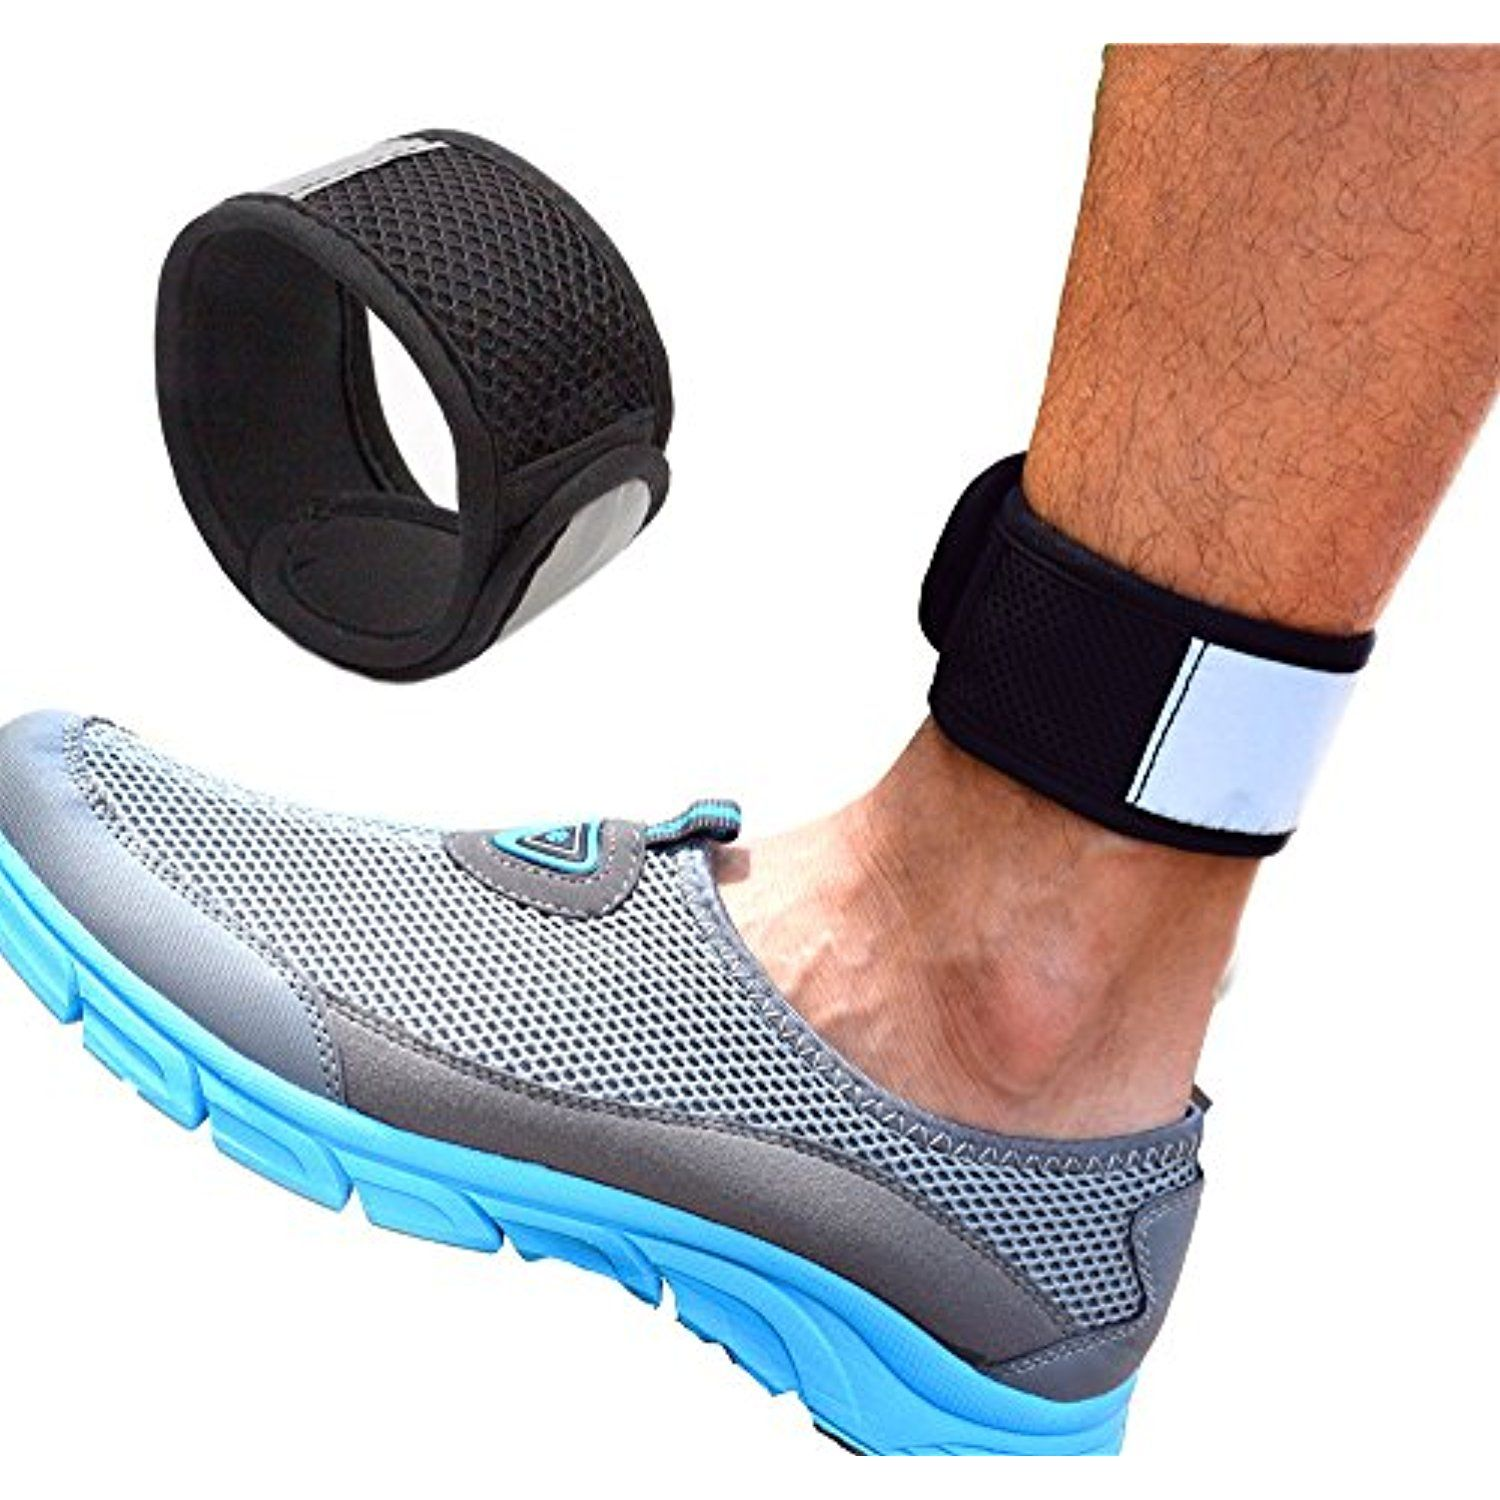 Reflective Ankle Band With Mesh Pouch For Fitbit Zip Charge2 Blaze